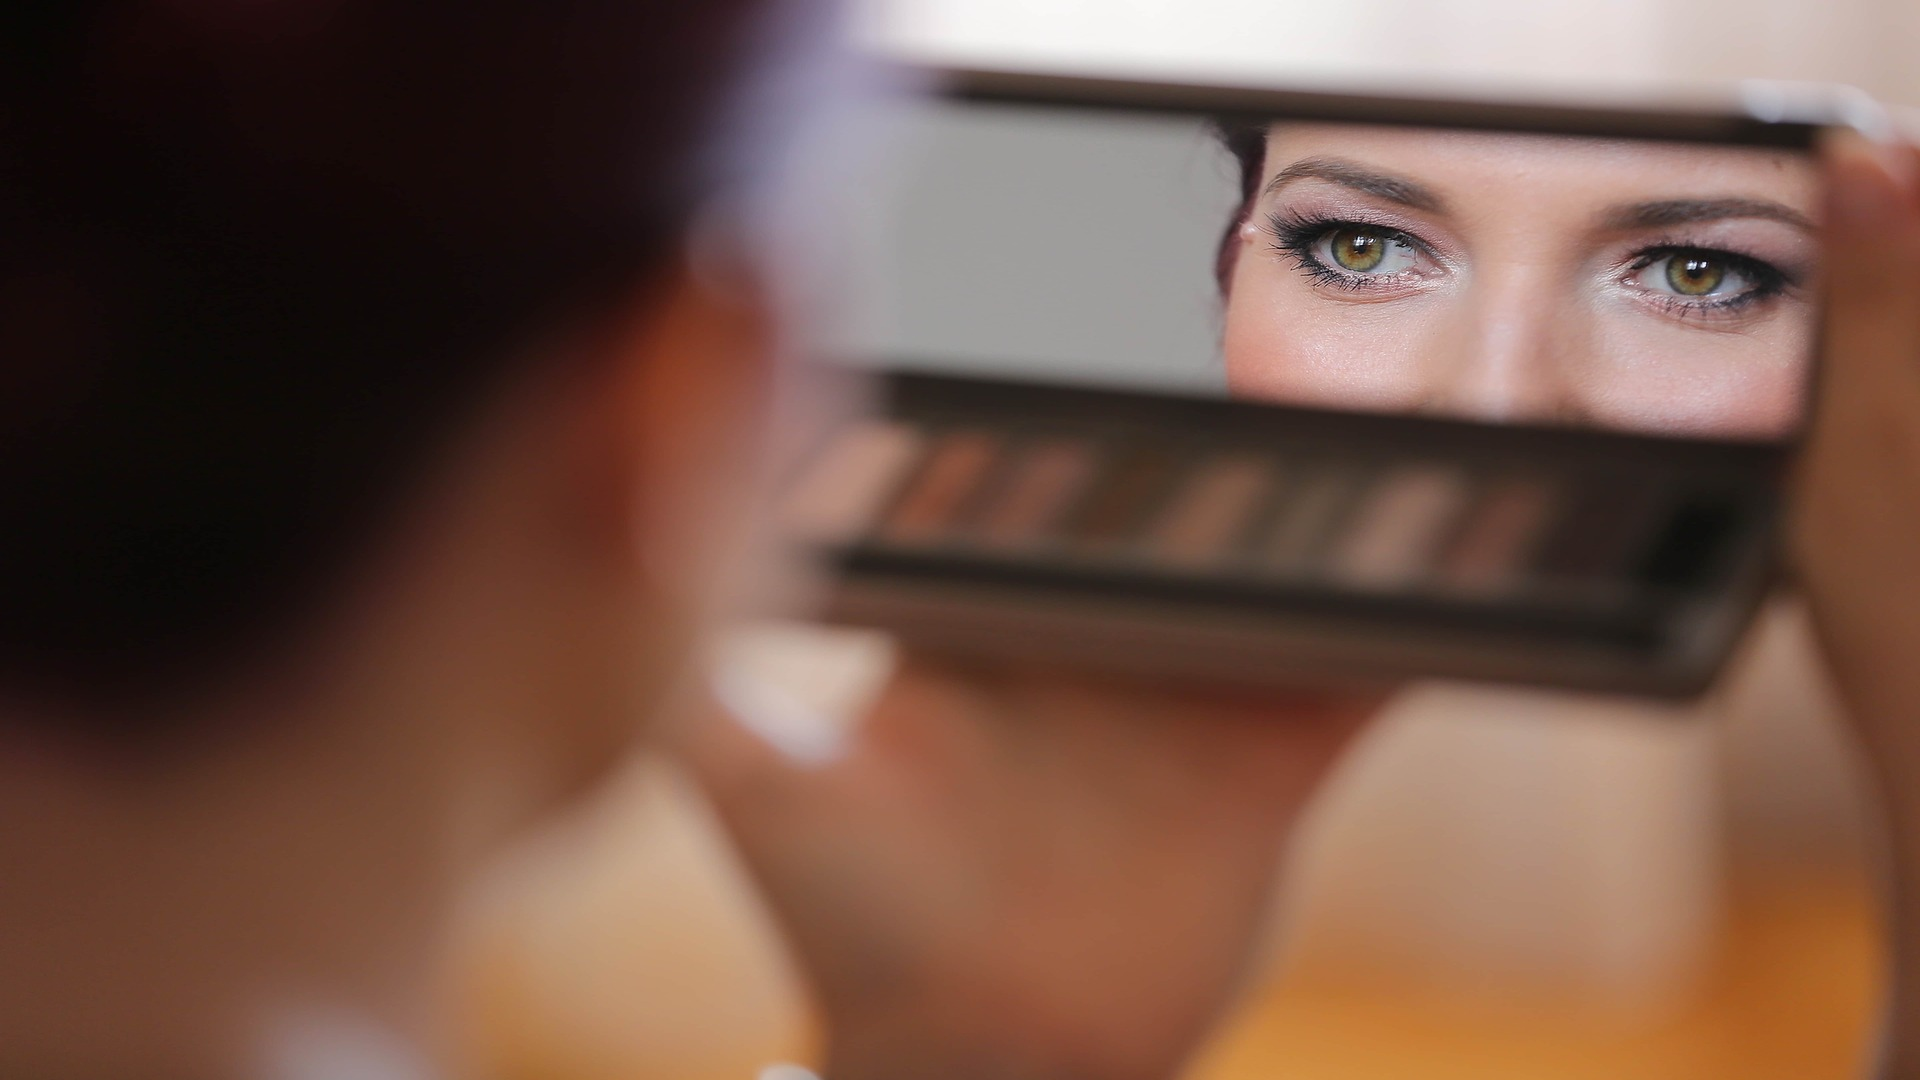 Looking in the Mirror: How Human Perception Distracts from the Big Picture 3